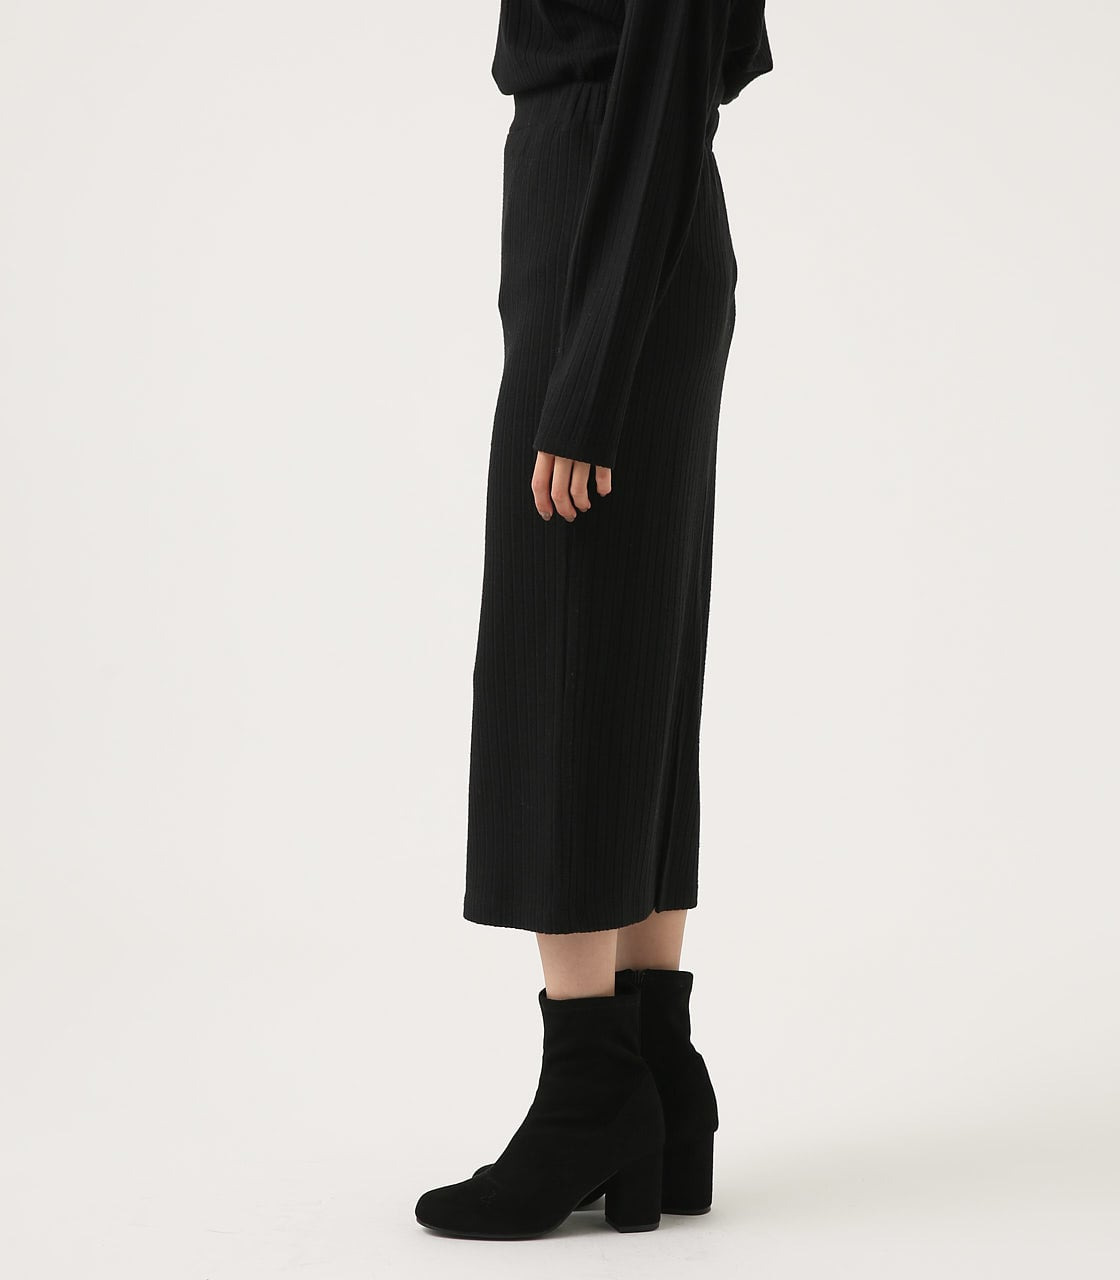 【AZUL BY MOUSSY】BLUSHED TIGHT MIDI SKIRT 詳細画像 BLK 6